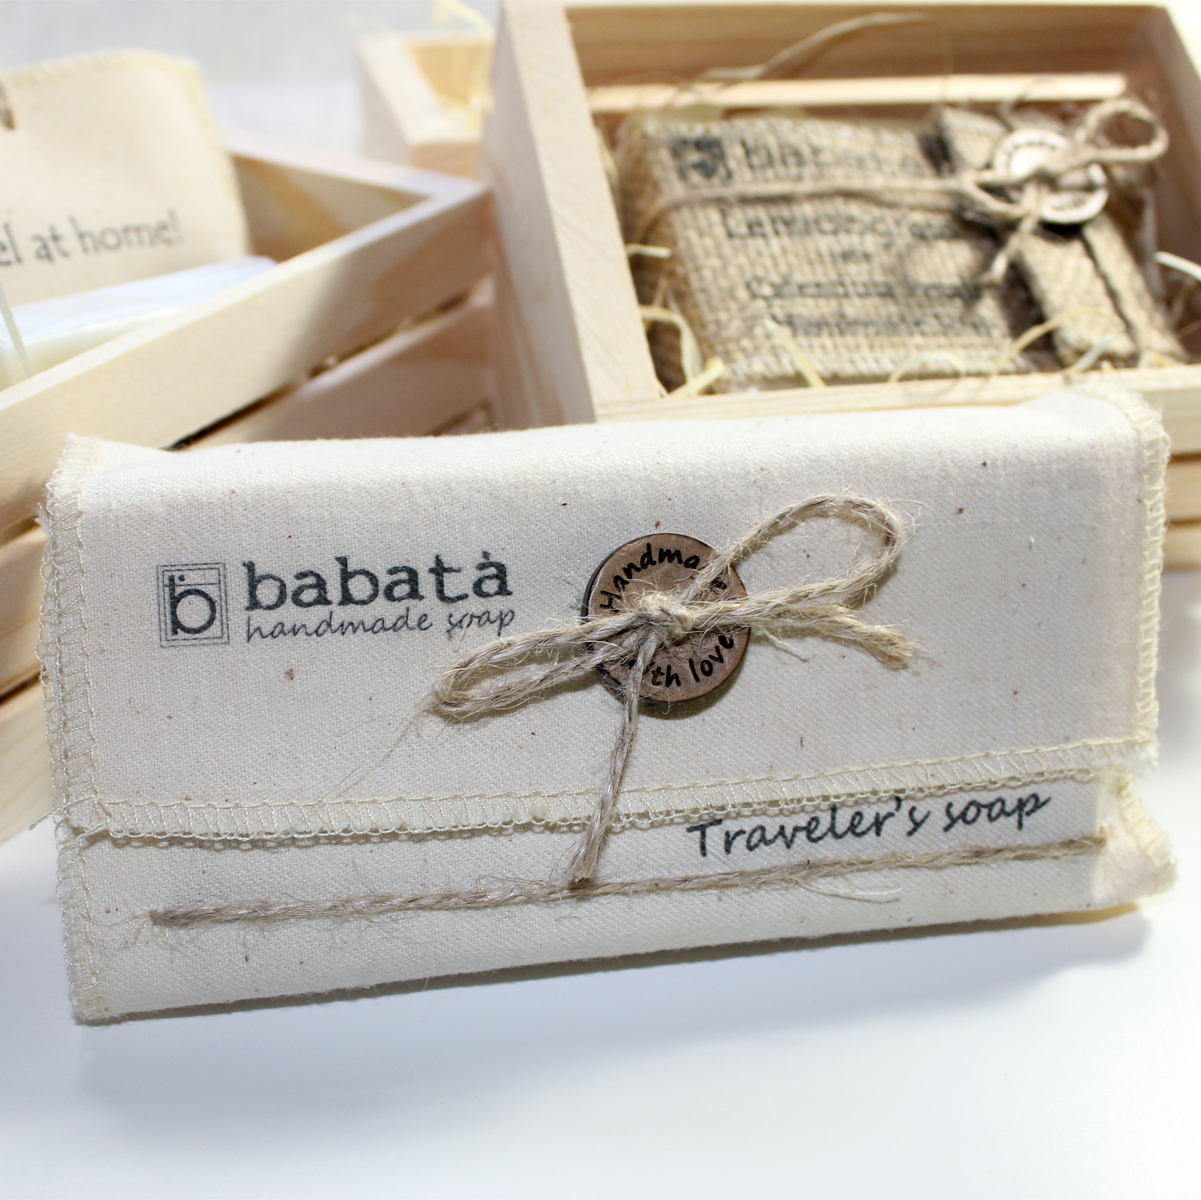 Products Archive - Handmade Soap - Best Handmade Soap Made in New York